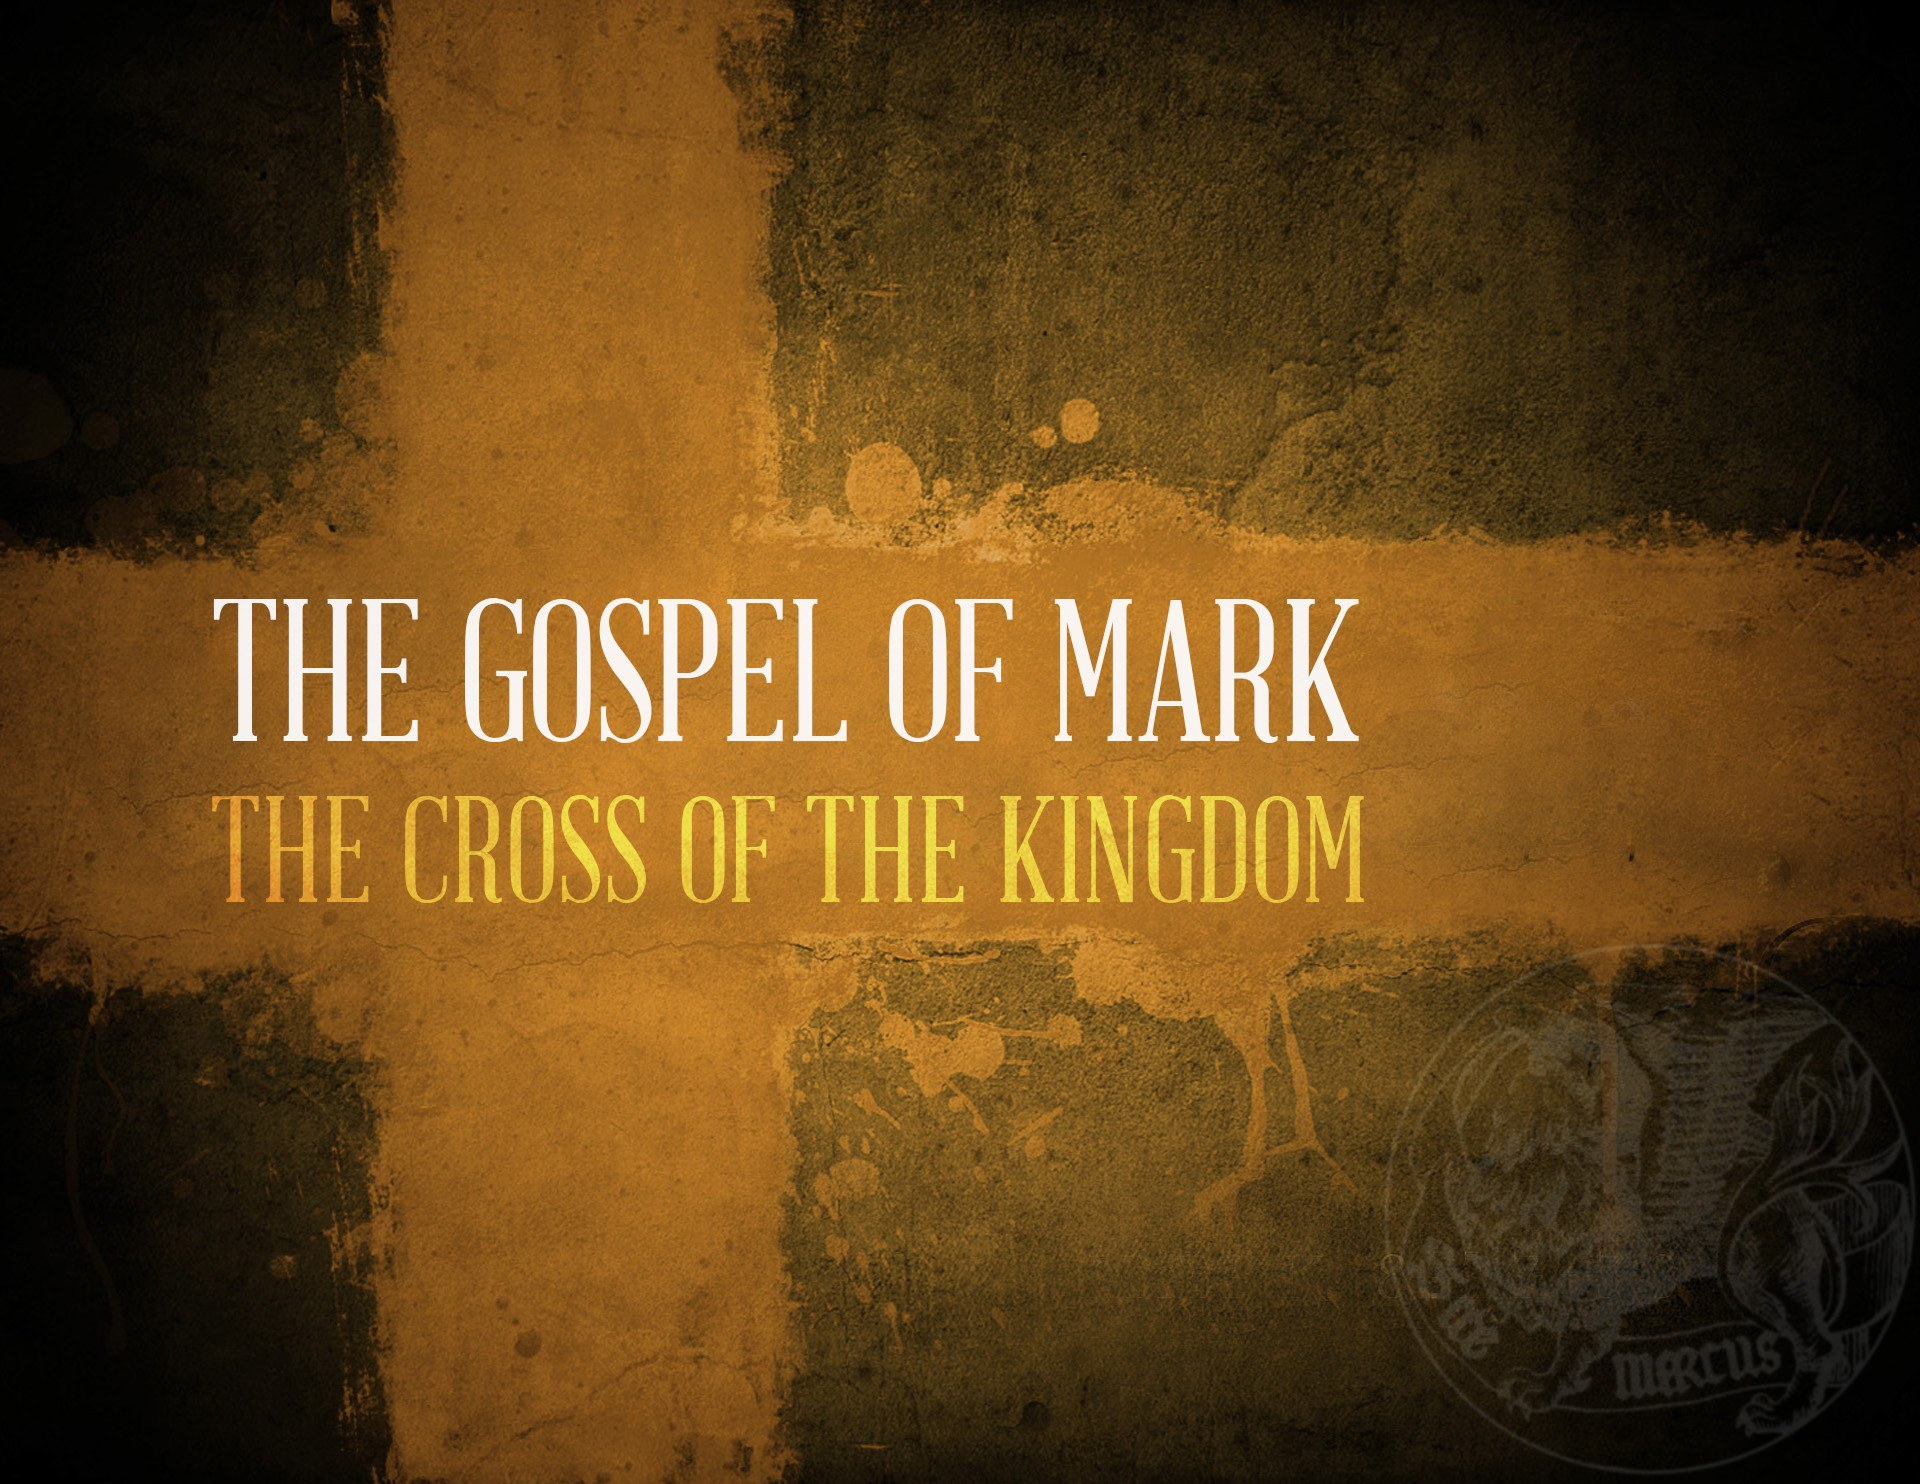 View all sermons in Mark: The Cross of the Kingdom